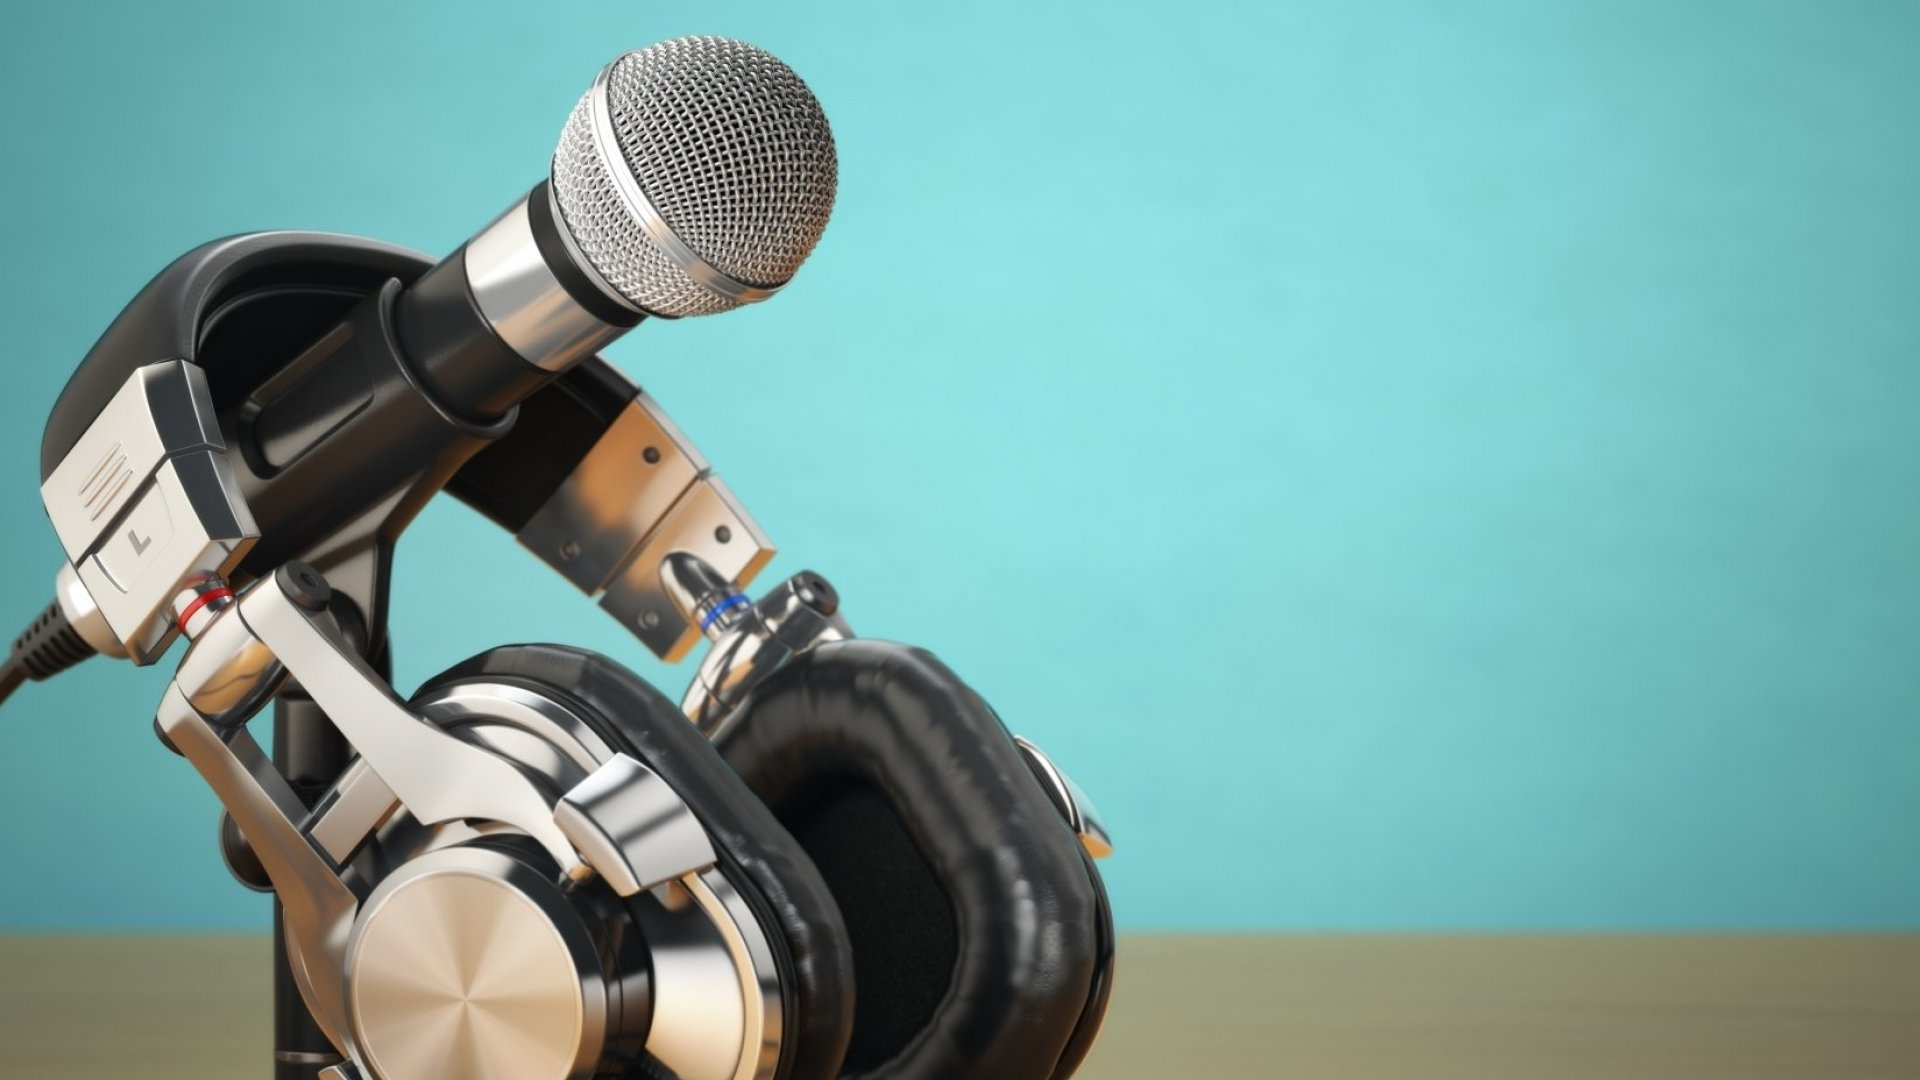 What to Listen for In a Speech So It's Not a Waste of Your Time